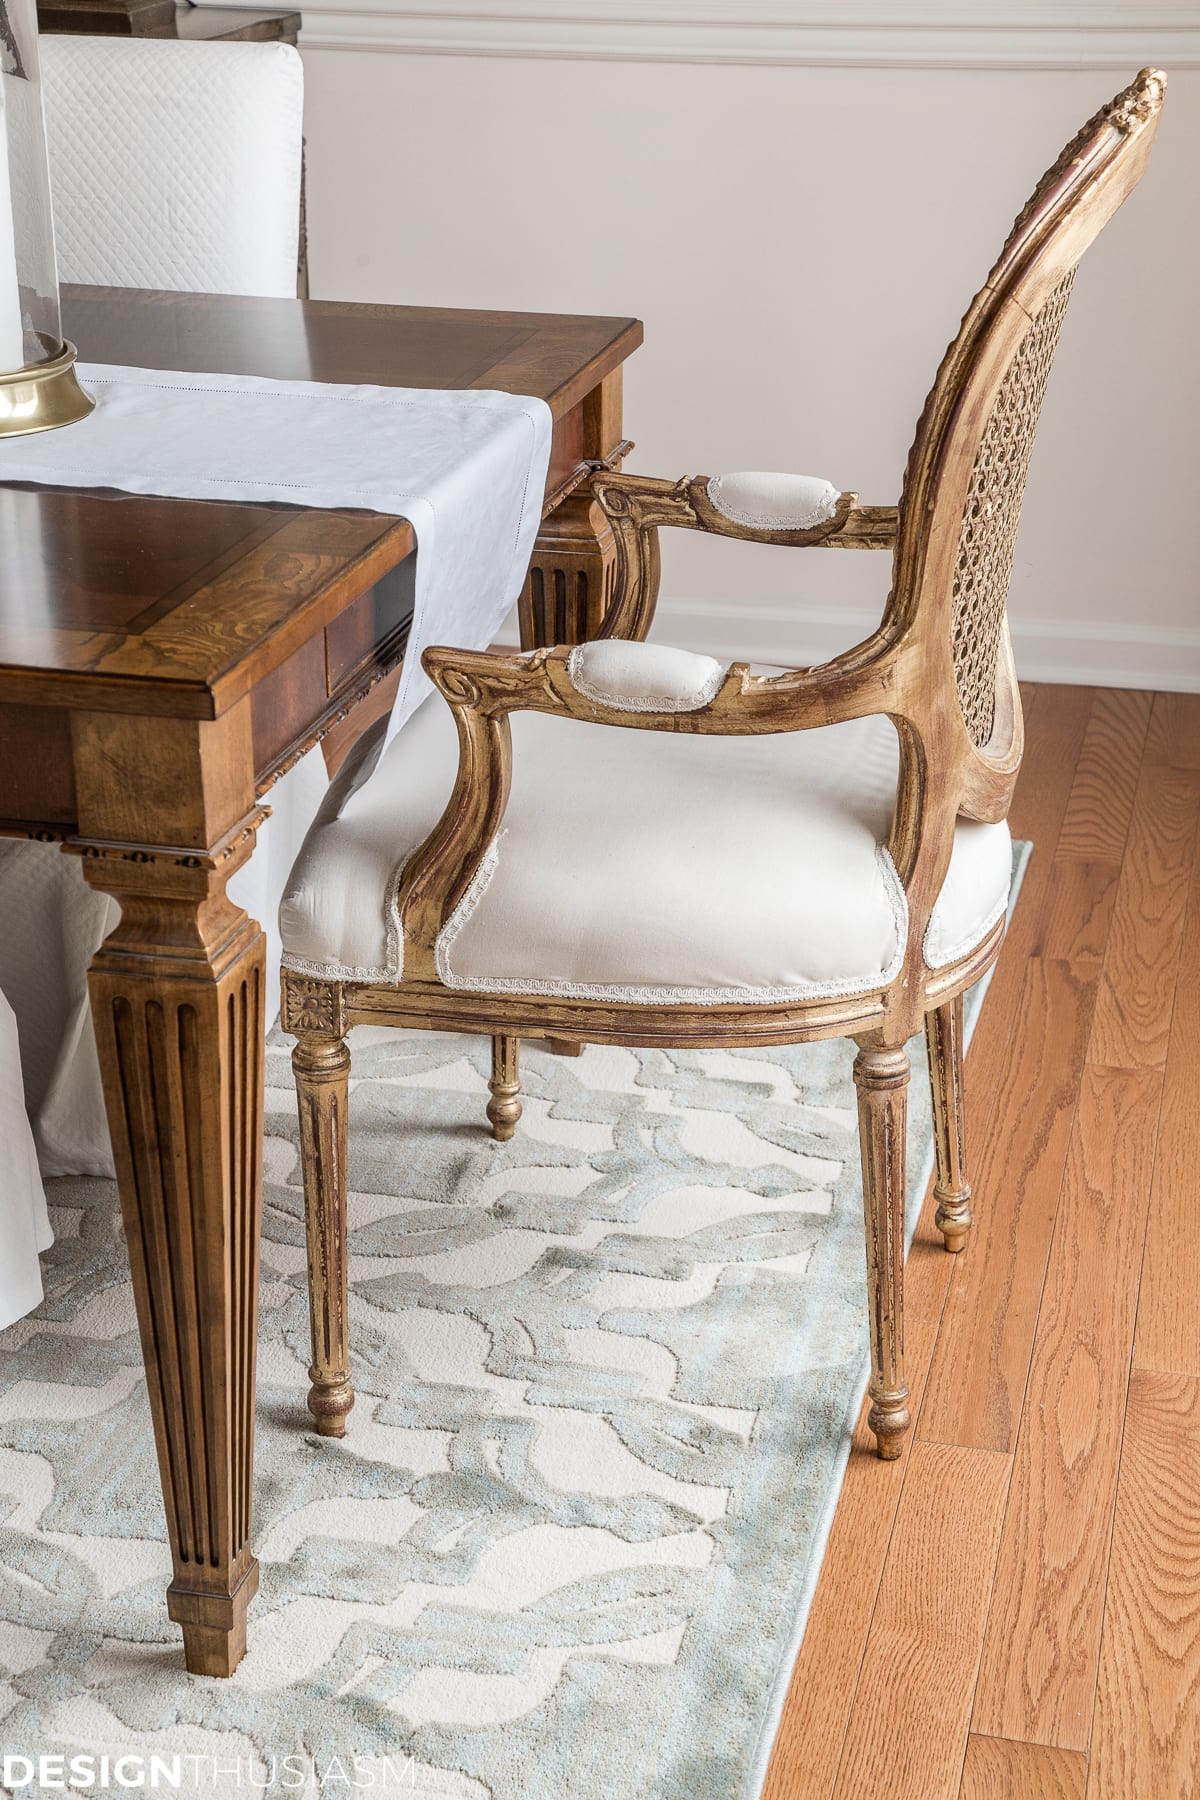 Transforming the dining room with replacing furniture - designthusiasm.com